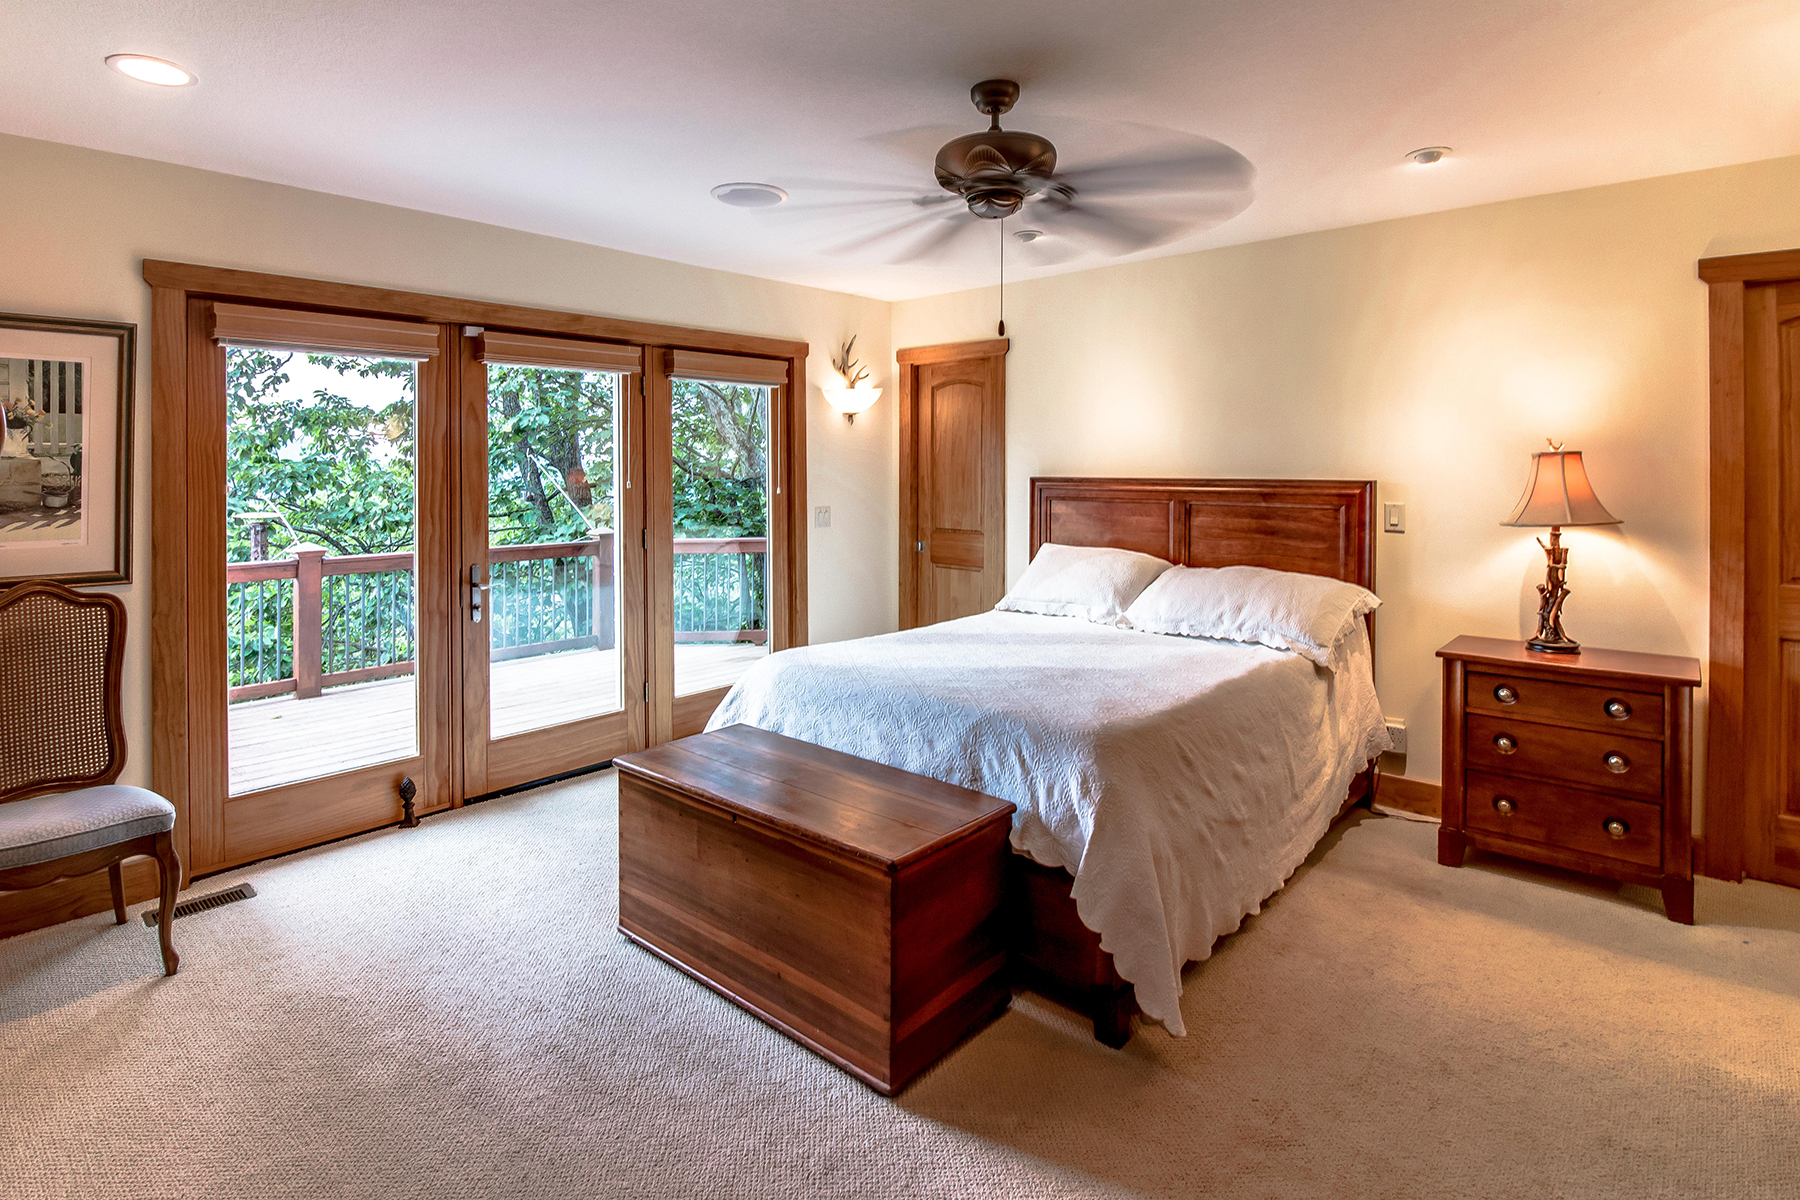 Additional photo for property listing at GLORIOUS SUNSETS IN HIGH VISTA 40  Chinquapin Dr 25,  Mills River, North Carolina 28759 United States